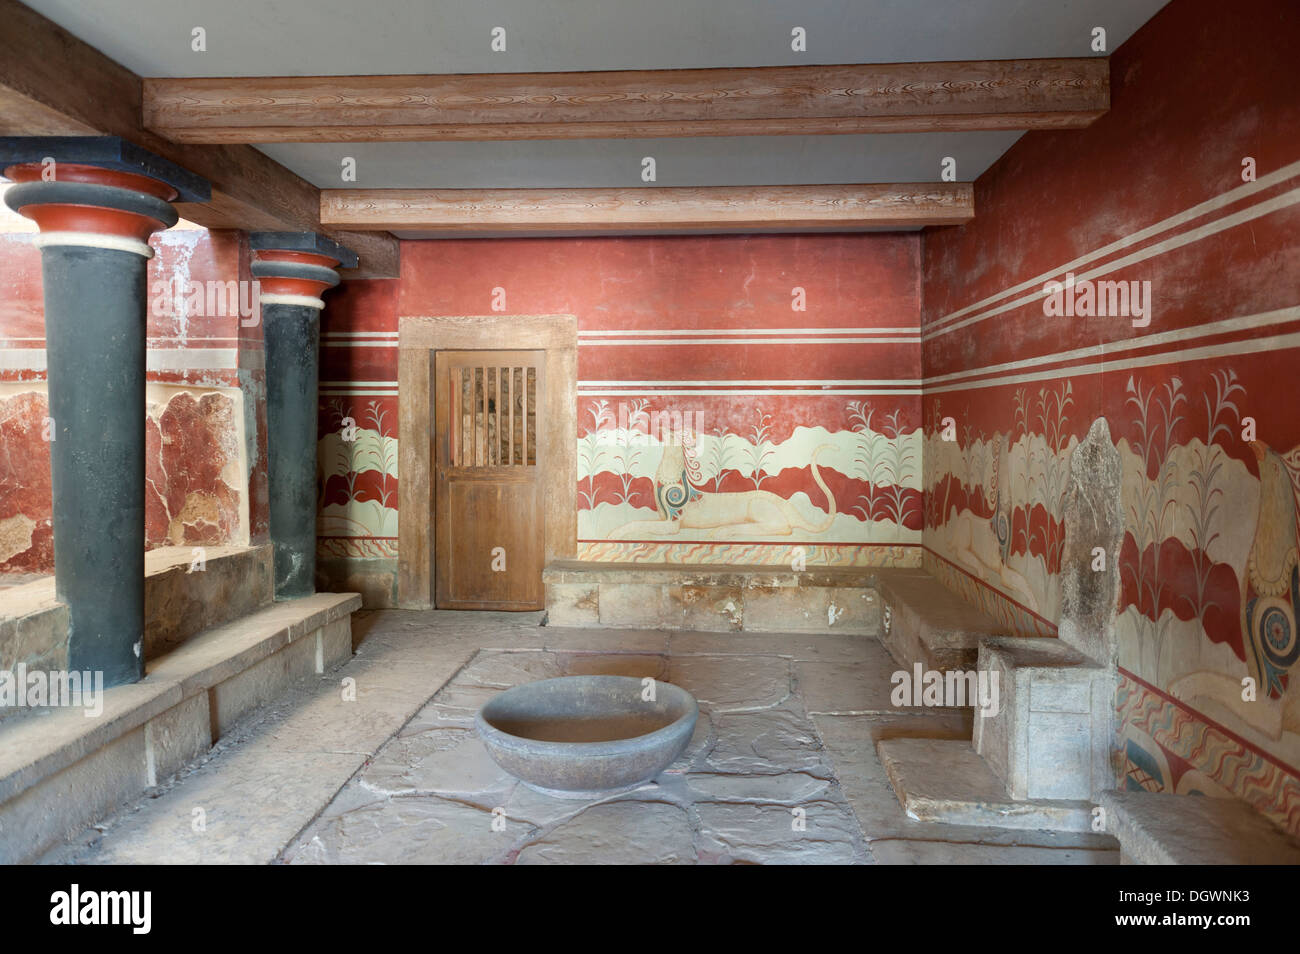 Archaeology, Minoan civilisation, antiquity, throne room with an alabaster throne, reconstruction according to archaeologist Sir - Stock Image